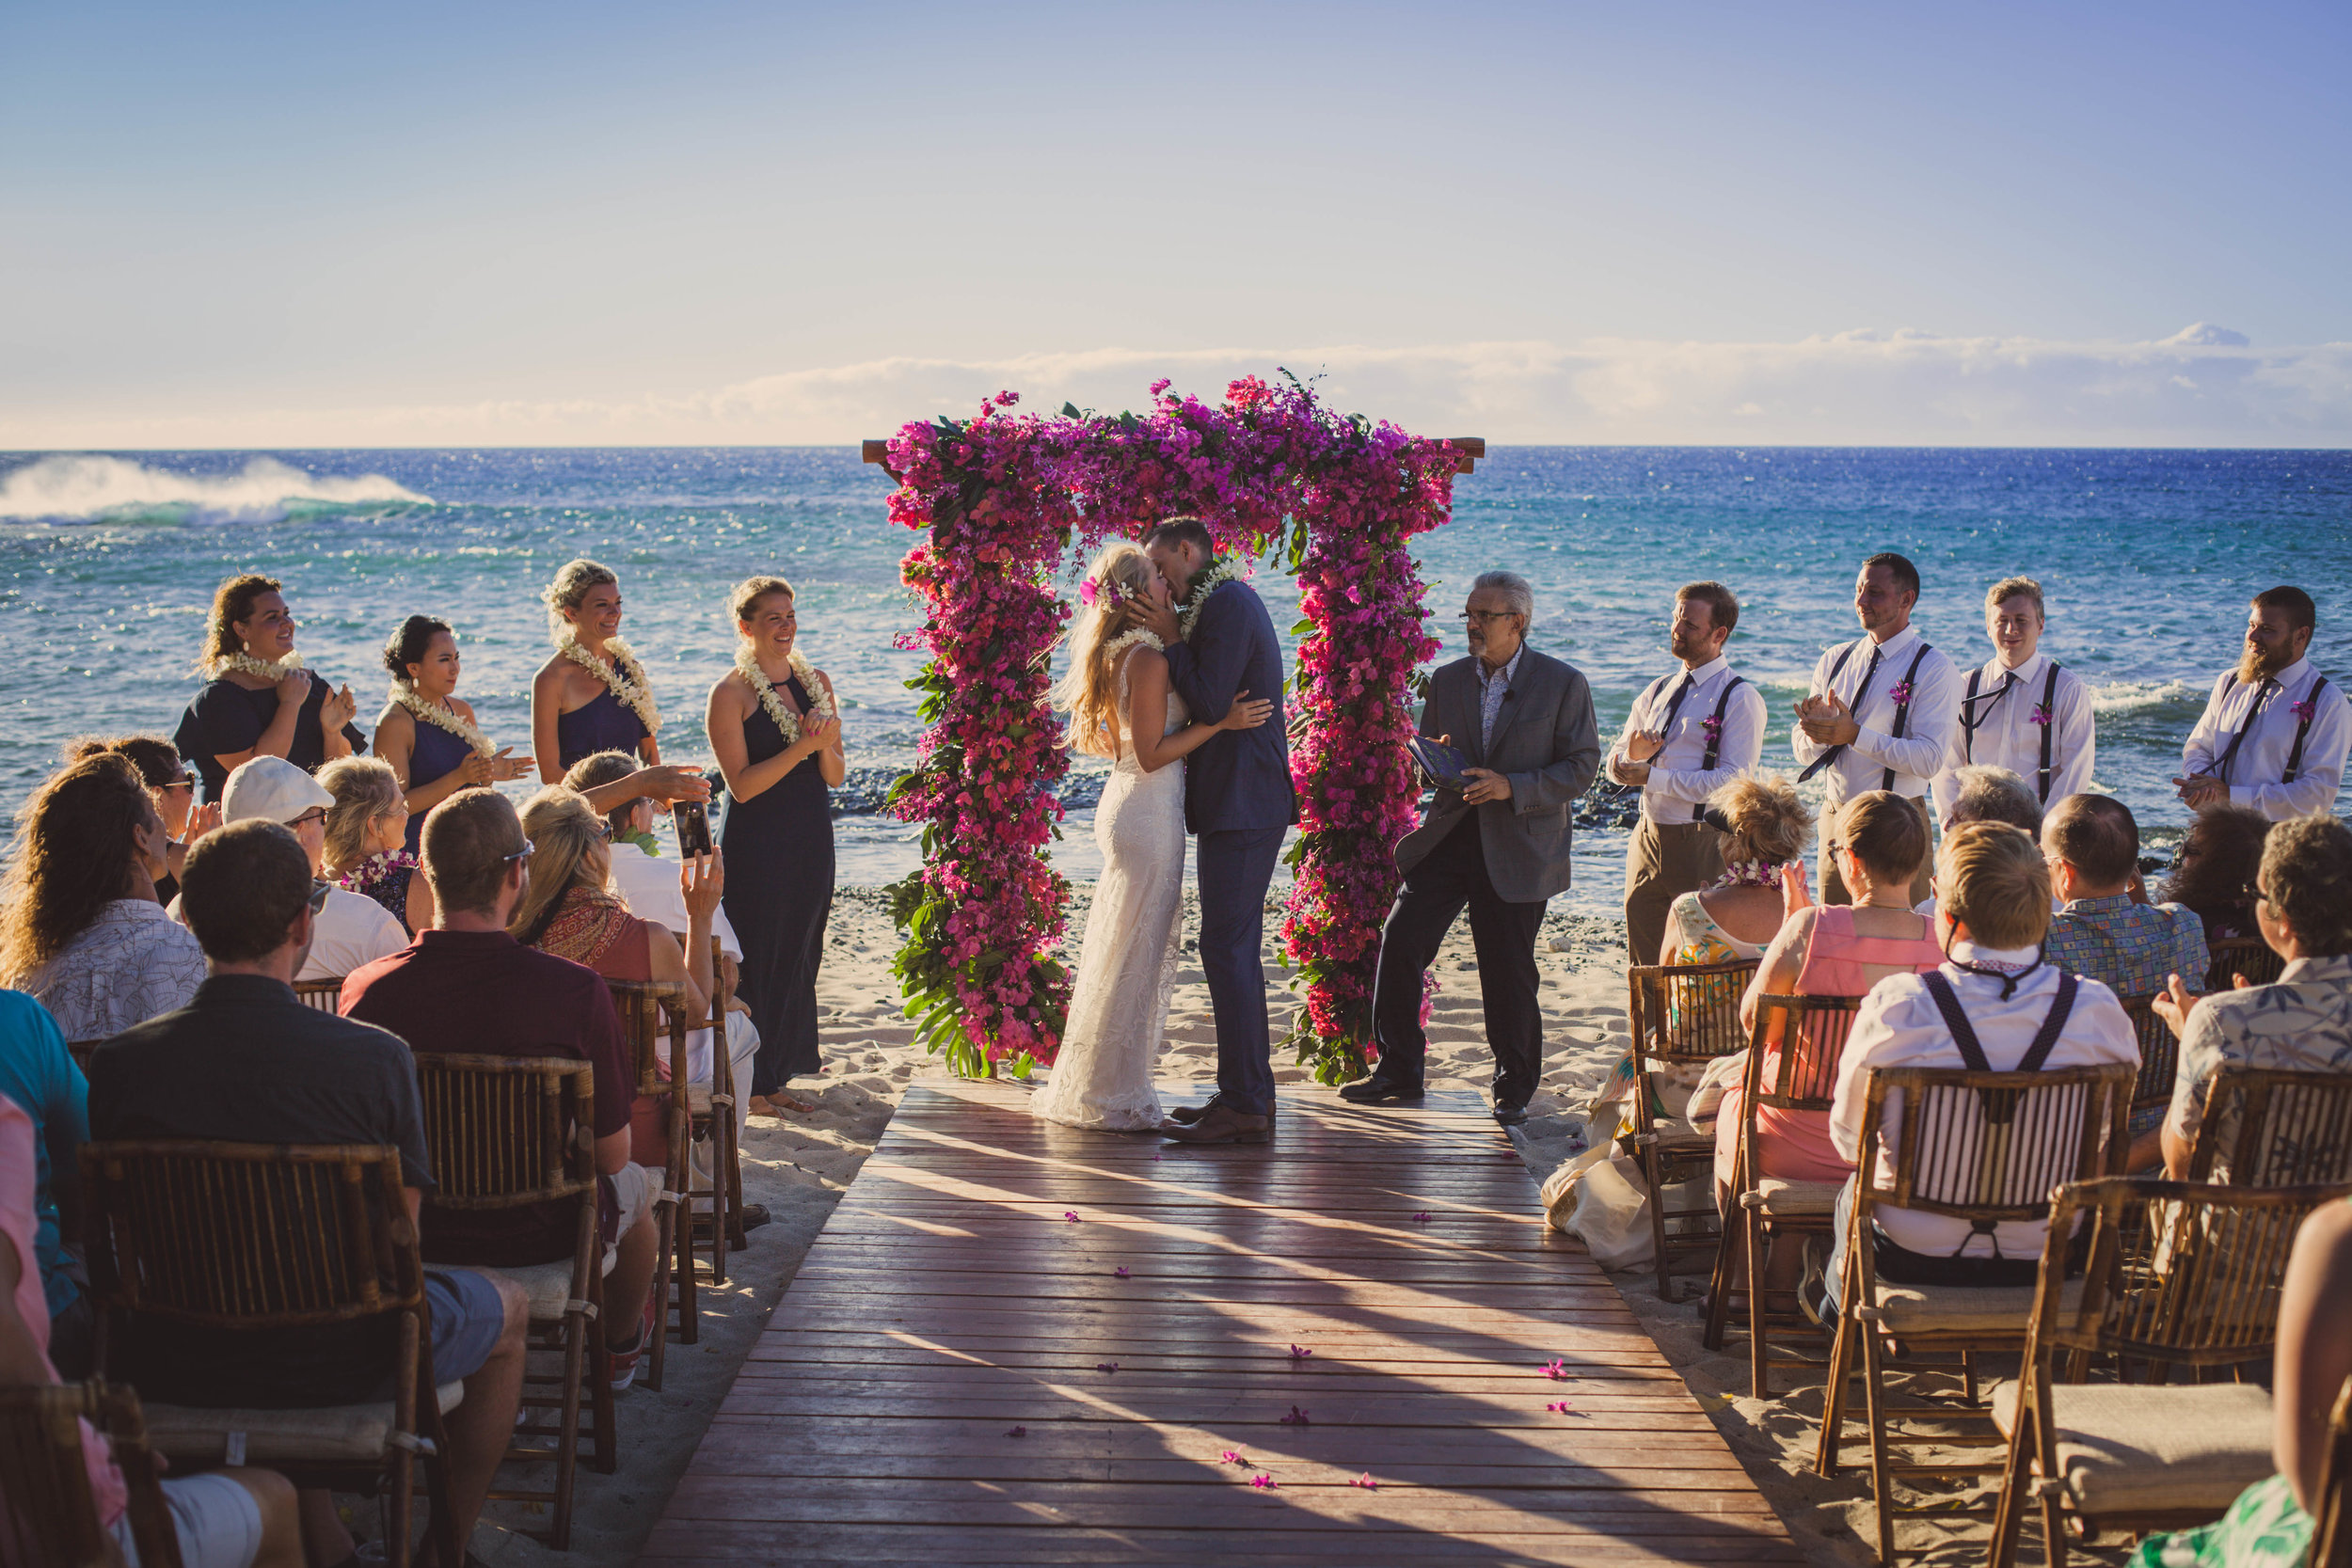 big island hawaii fairmont orchid beach wedding © kelilina photography 20170812175054-1.jpg